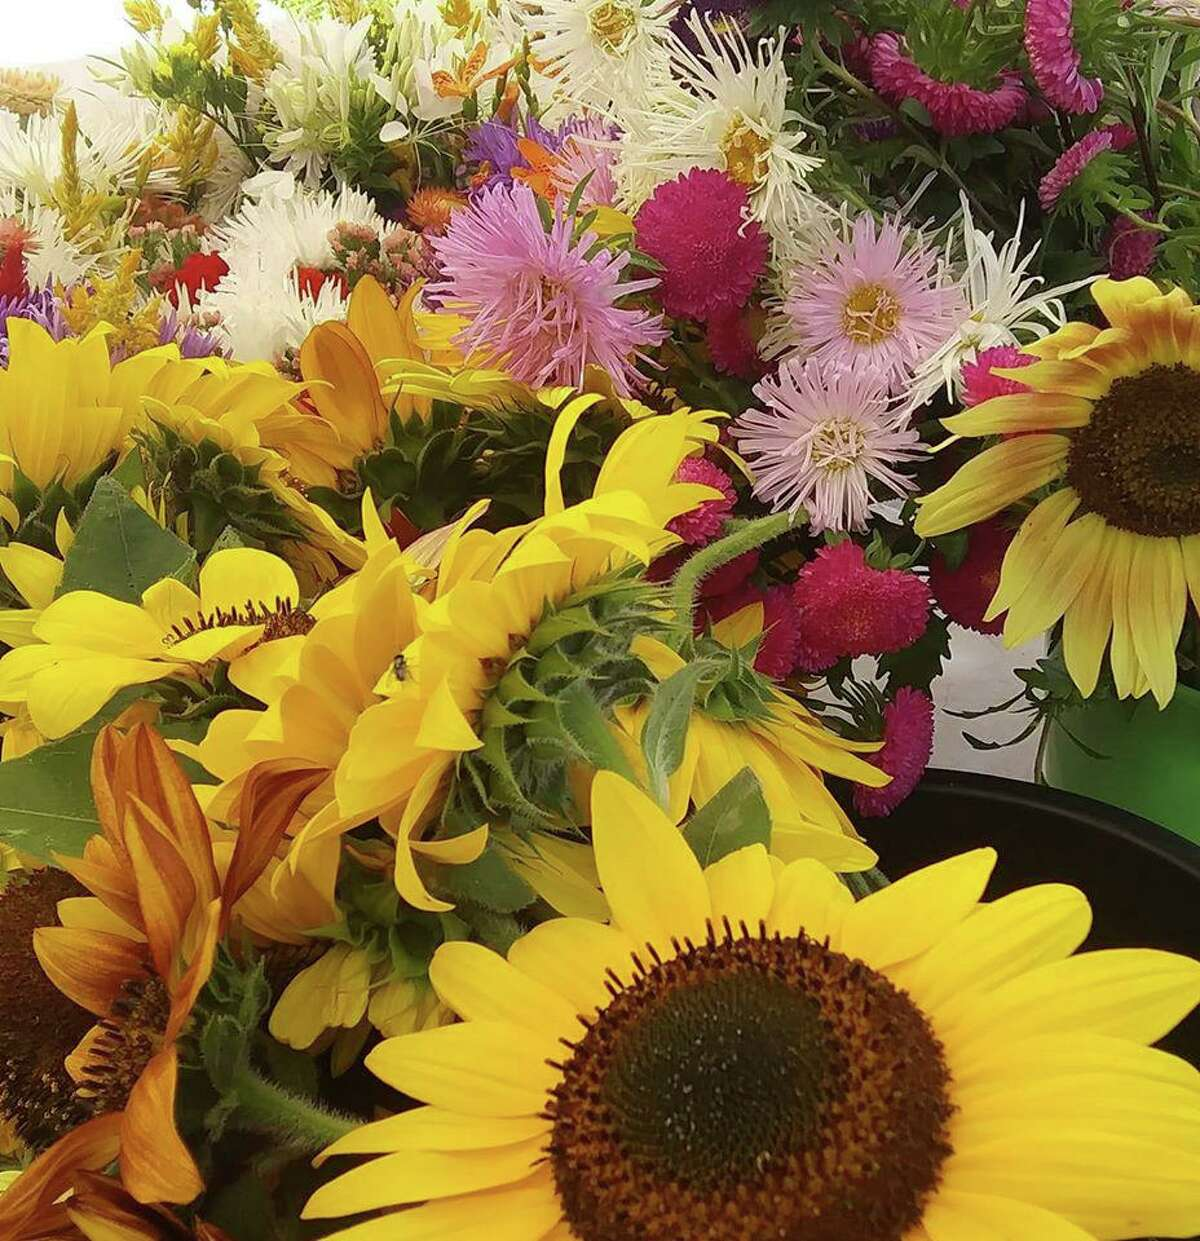 Flowers for sale at last year's farmers market.